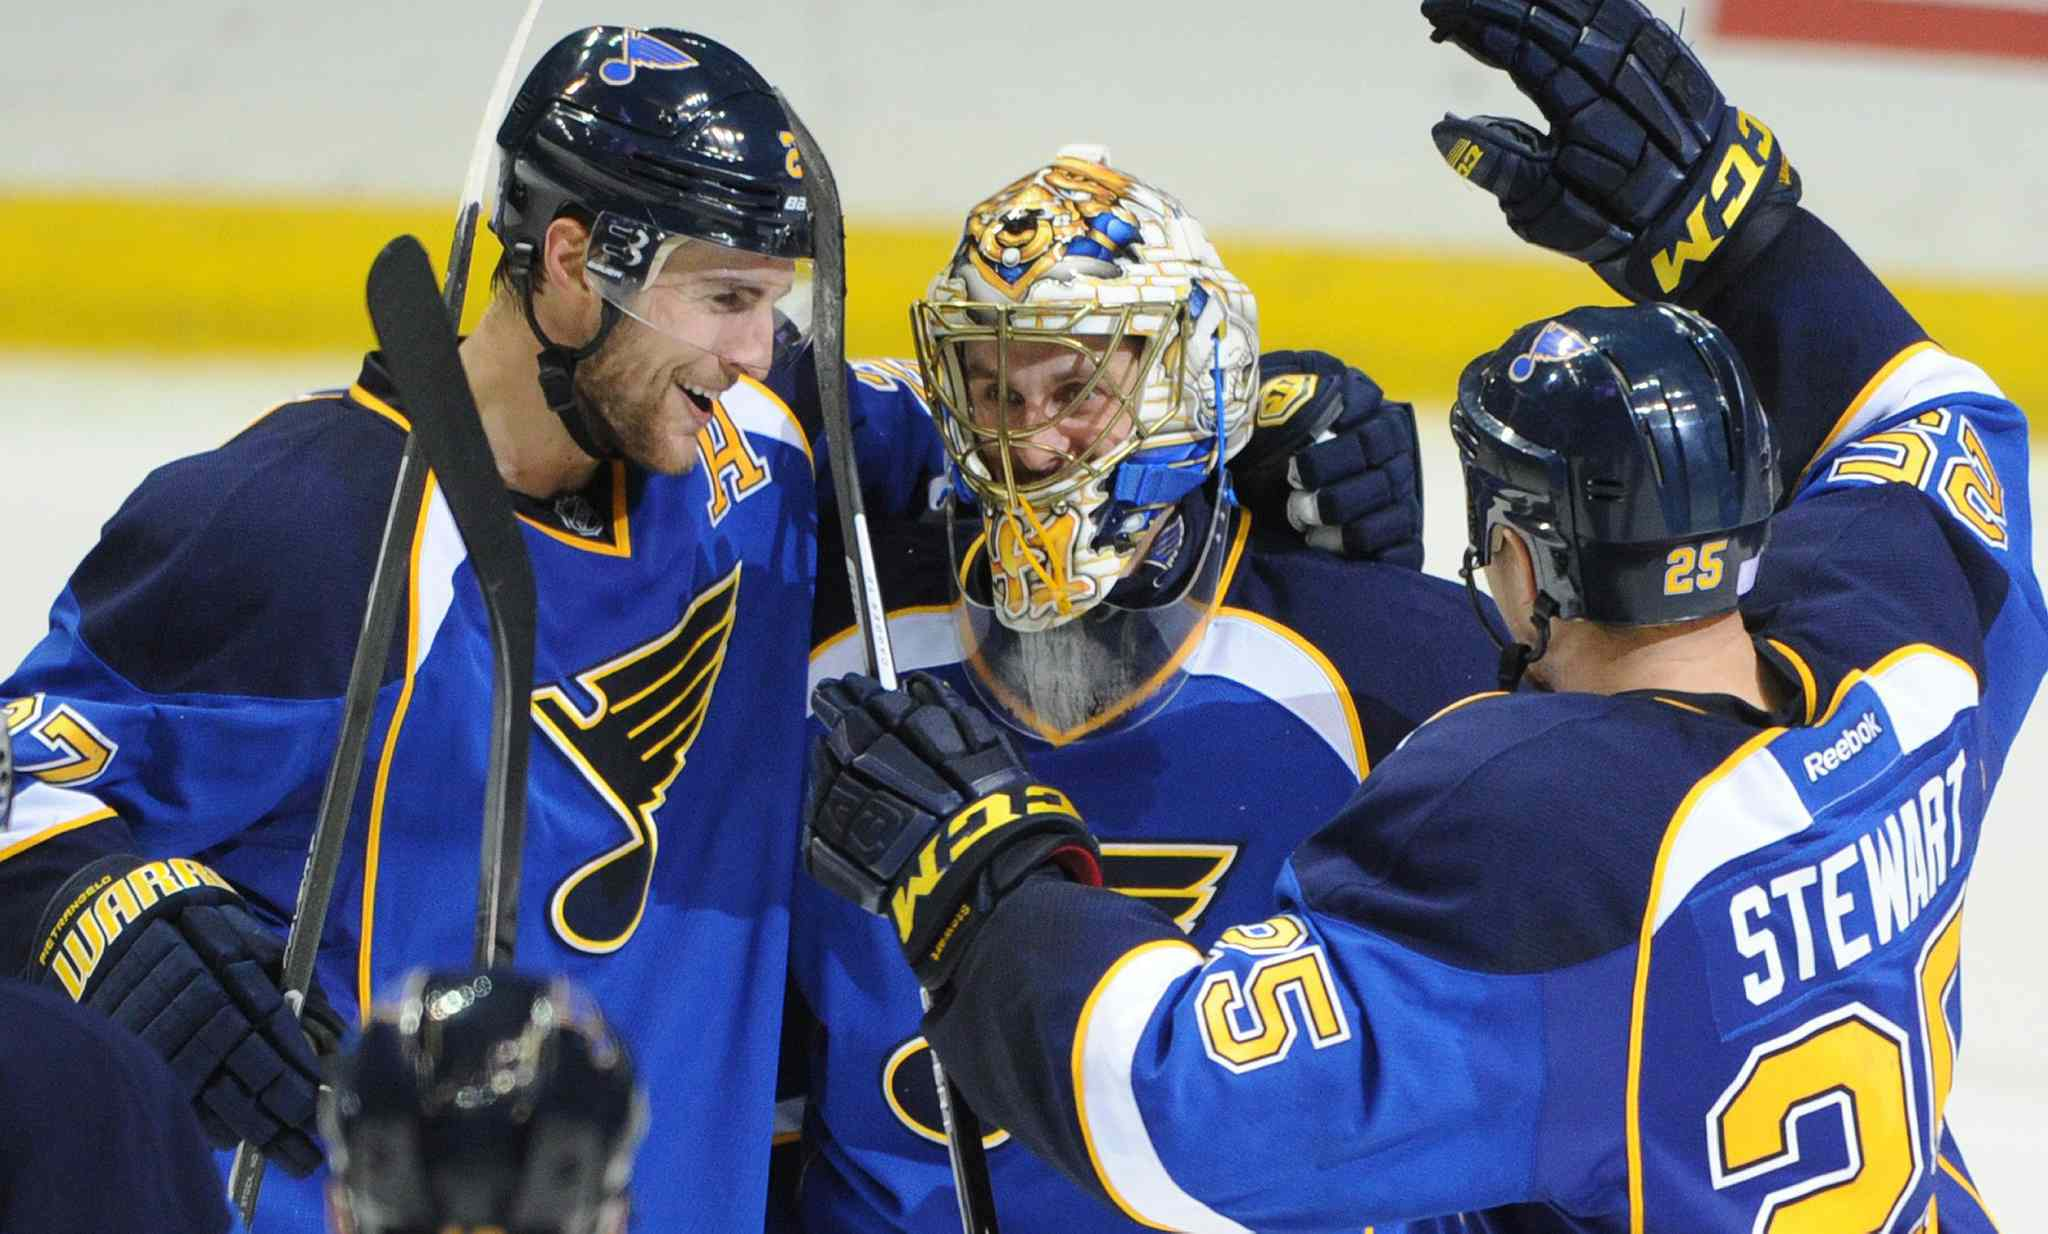 St. Louis Blues goalie Jaroslav Halak is congratulated by teammates Alex Pietrangelo (left) and Chris Stewart after the Blues' 3-2 victory over the Winnipeg Jets.